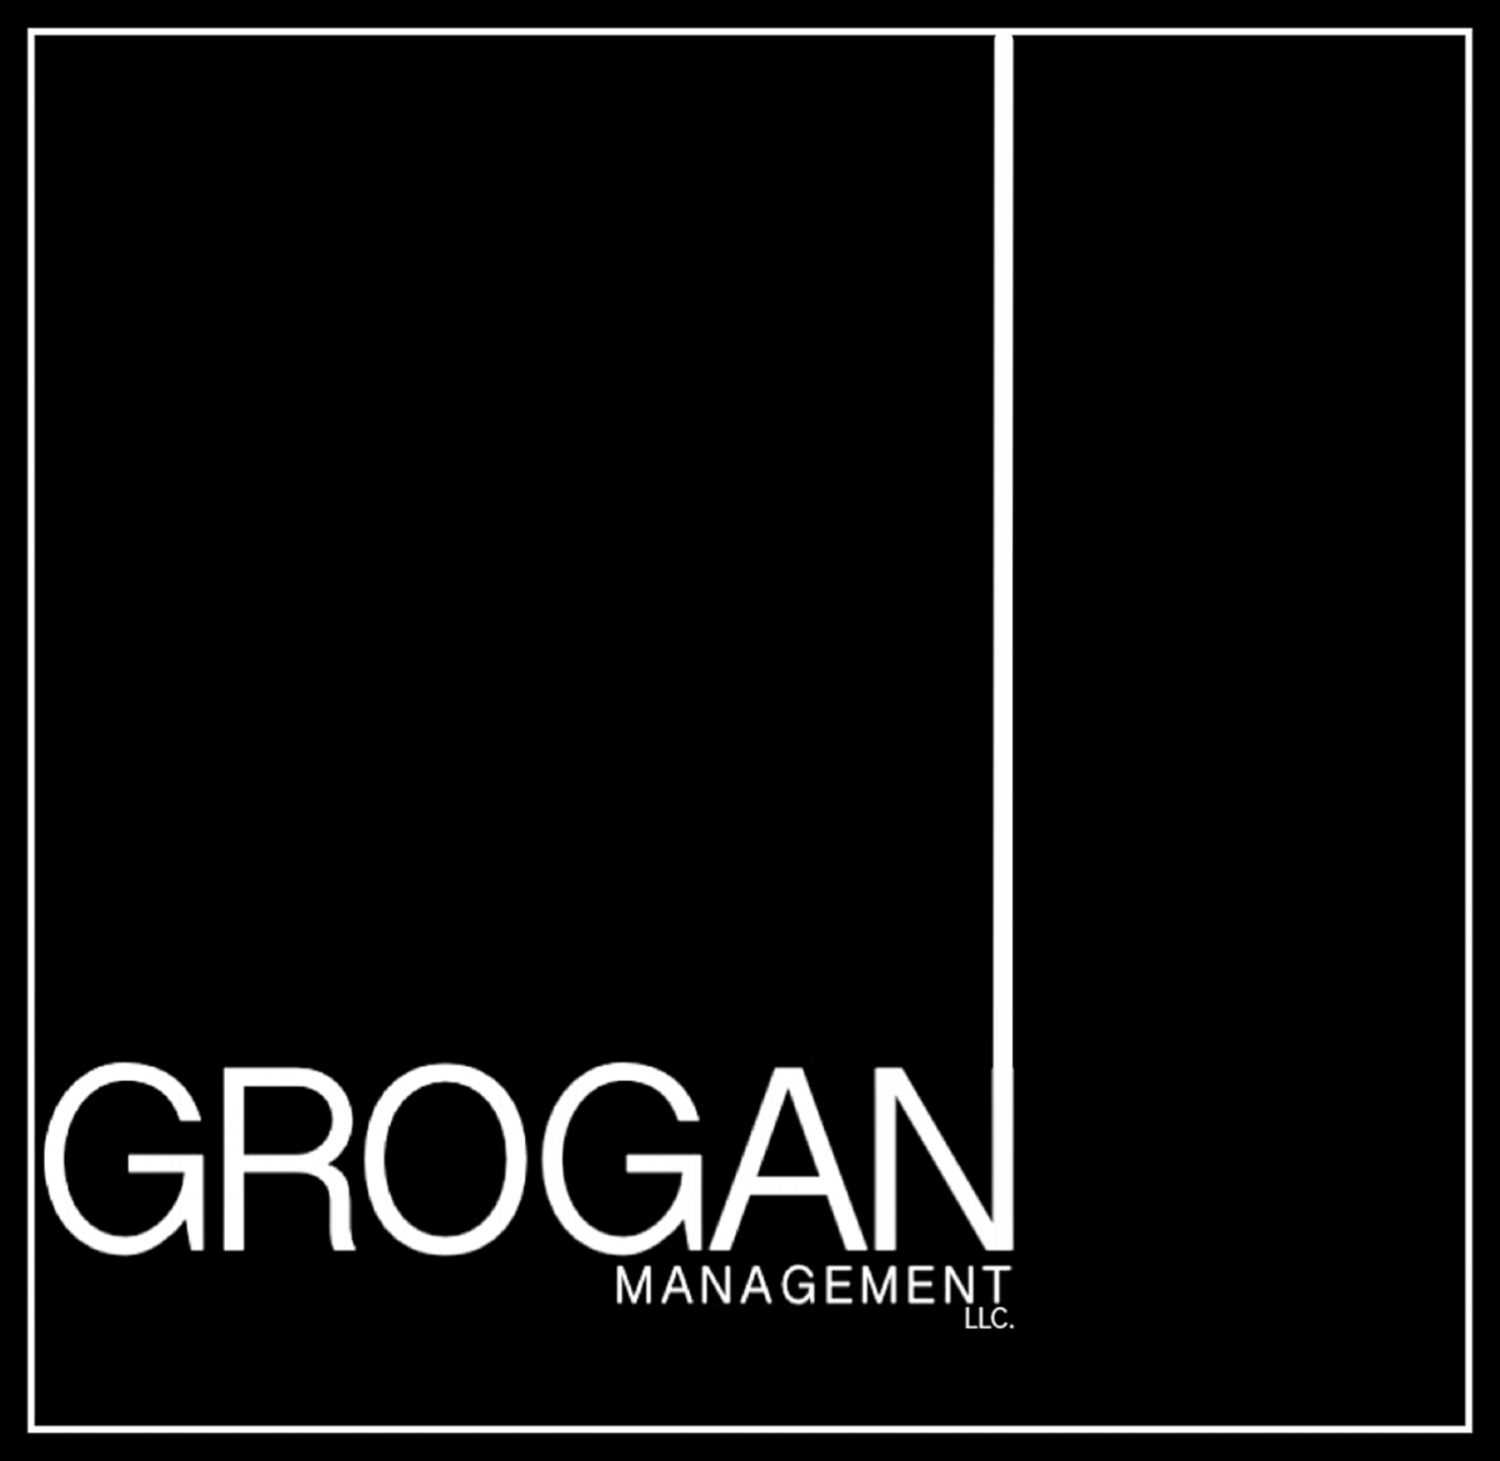 GROGAN MANAGEMENT LLC.